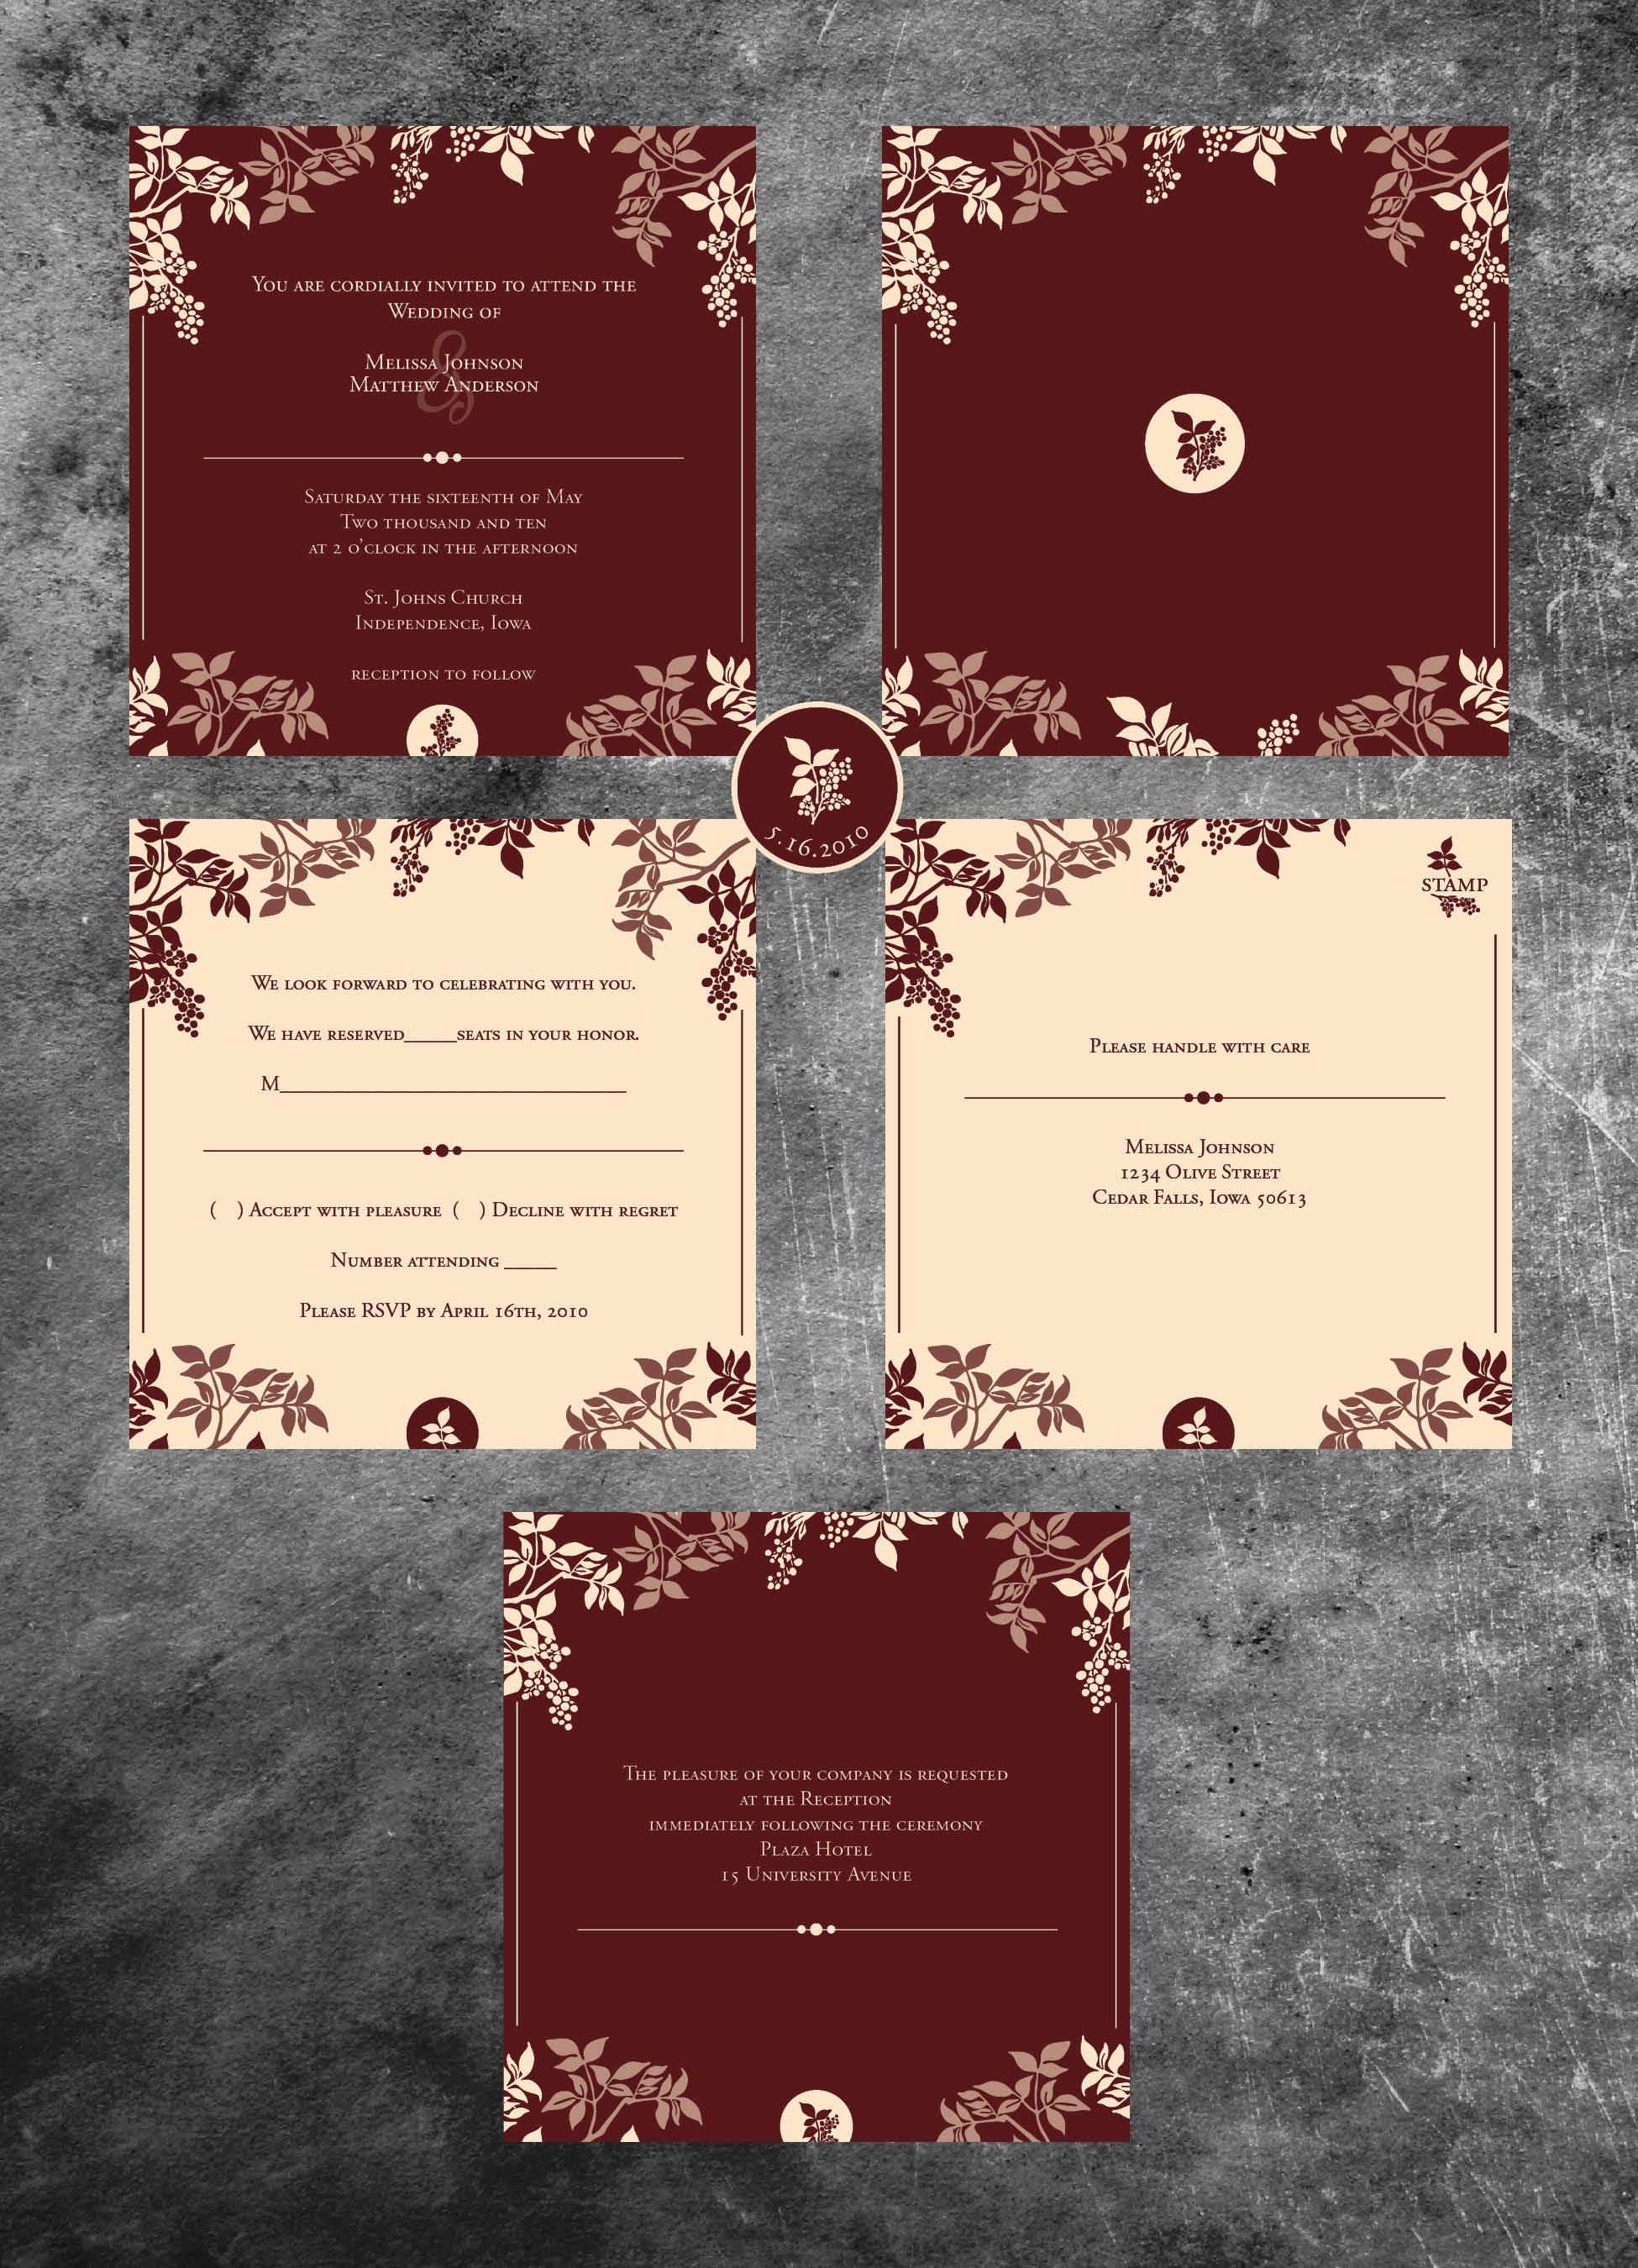 Fancy Wedding Invits Motif - Invitations and Announcements ...